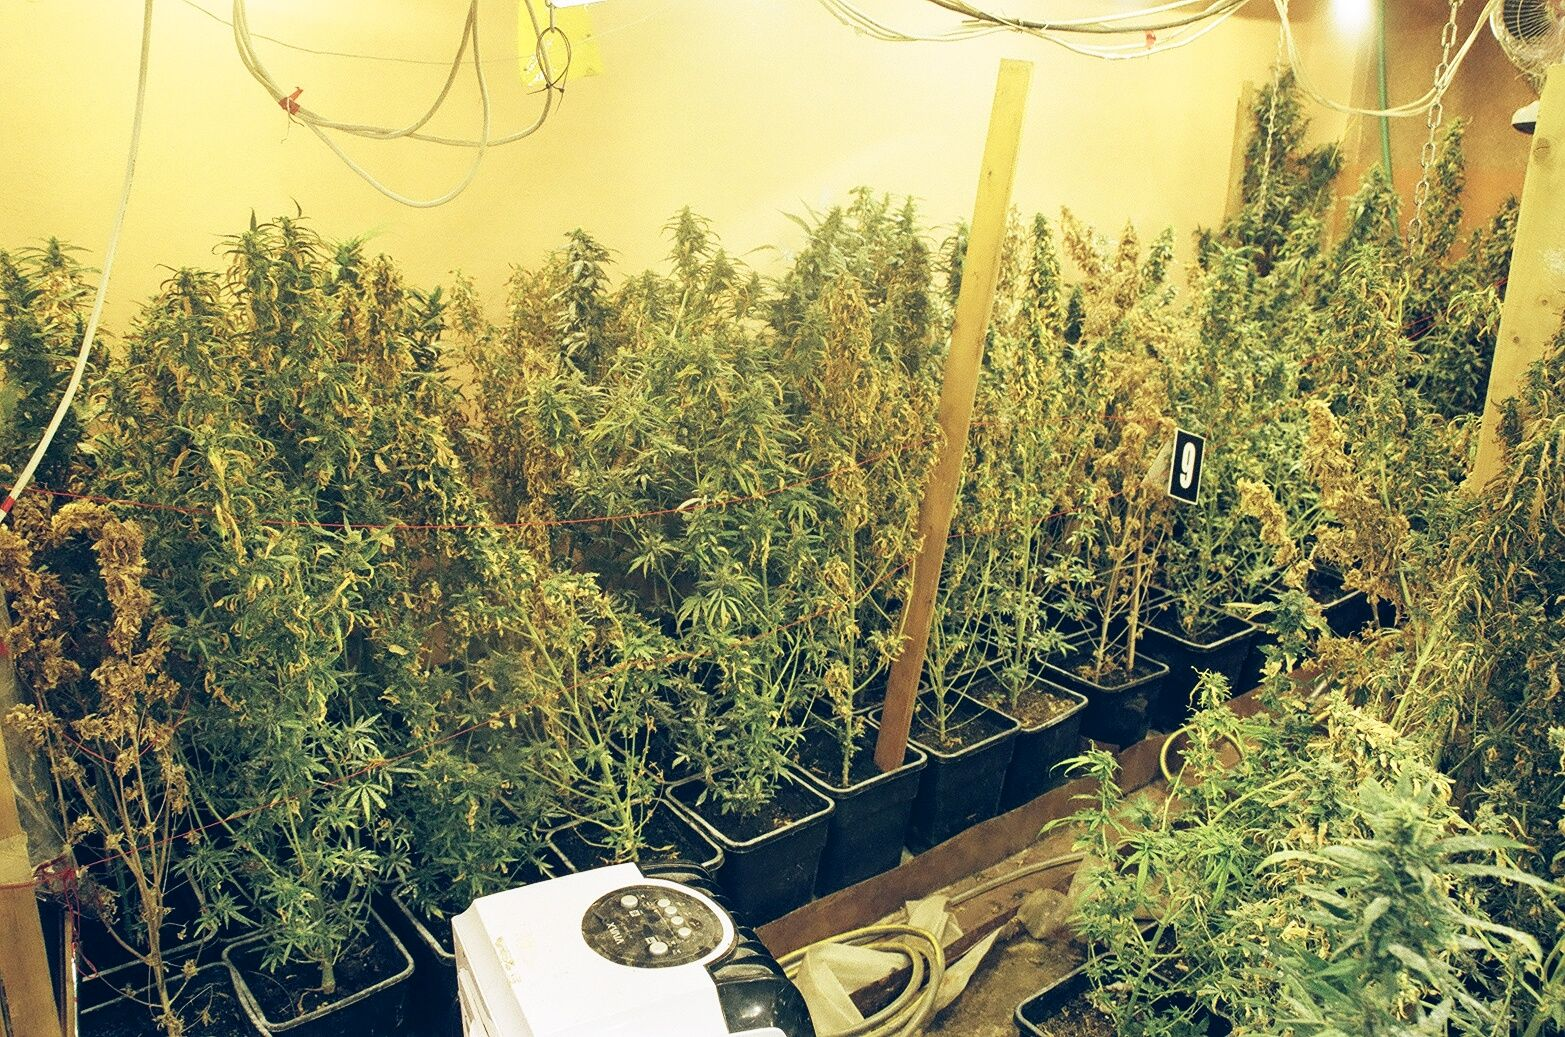 Bosnia: Police Discover Indoor Drug Labs